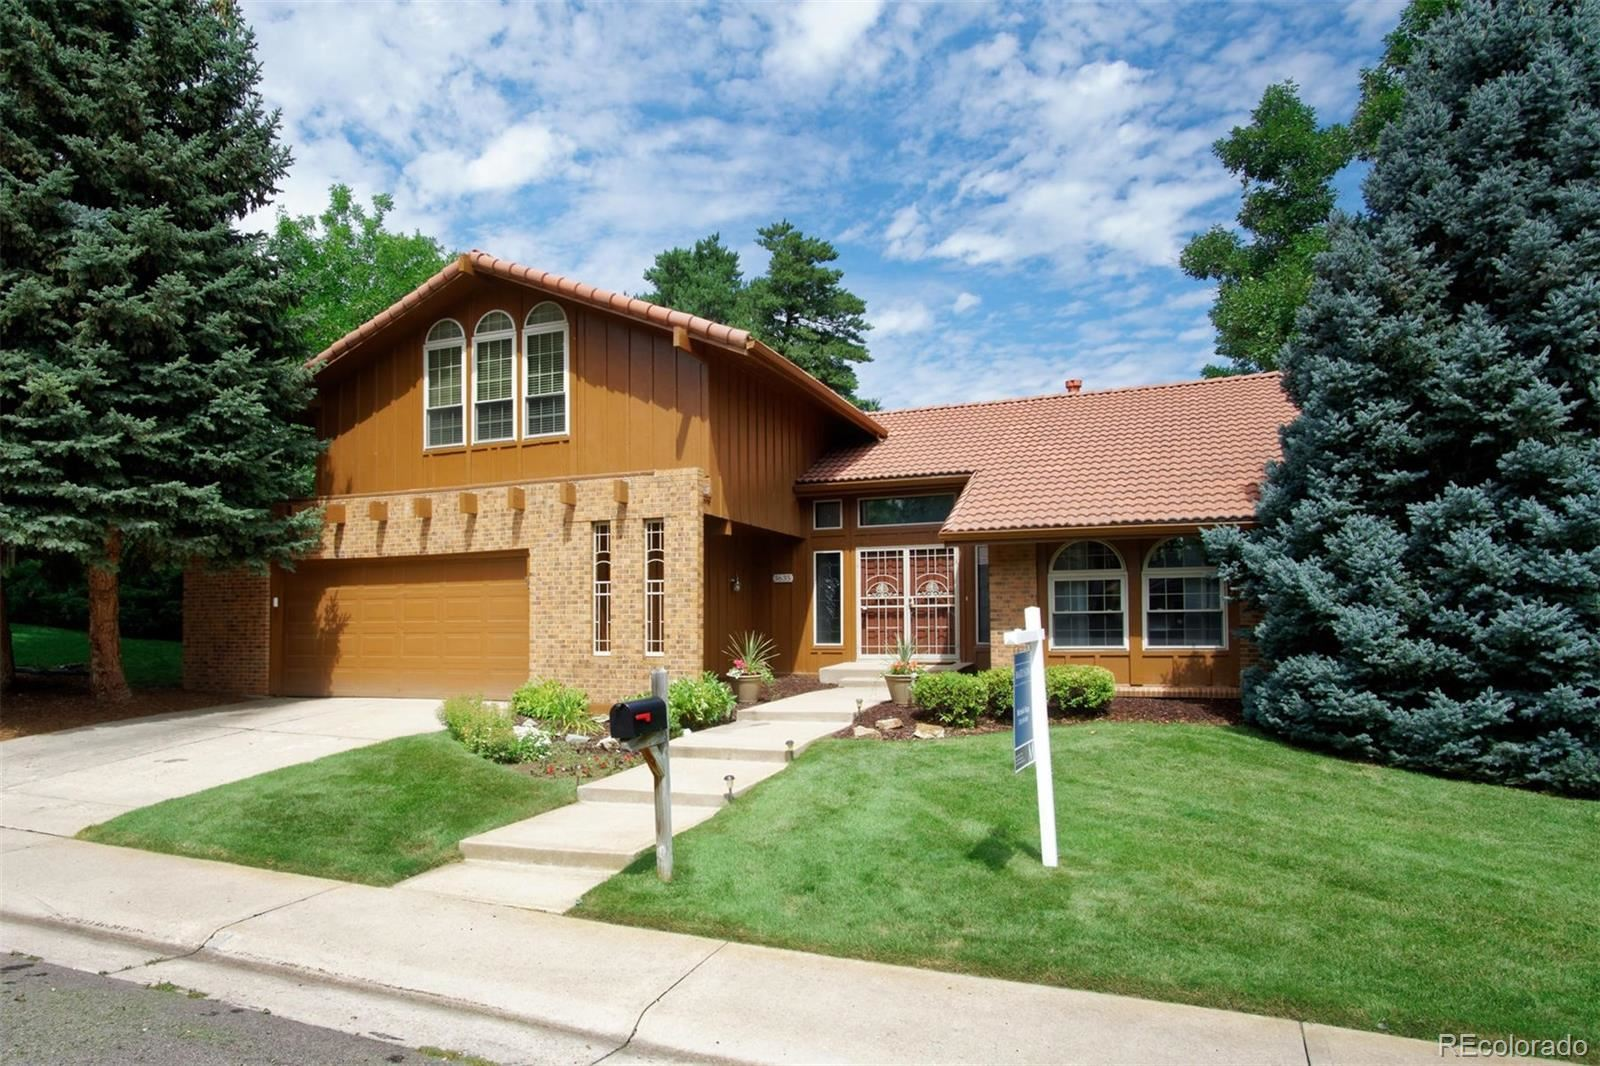 3635 S Roslyn Way, Denver, CO 80237 - #: 5669647